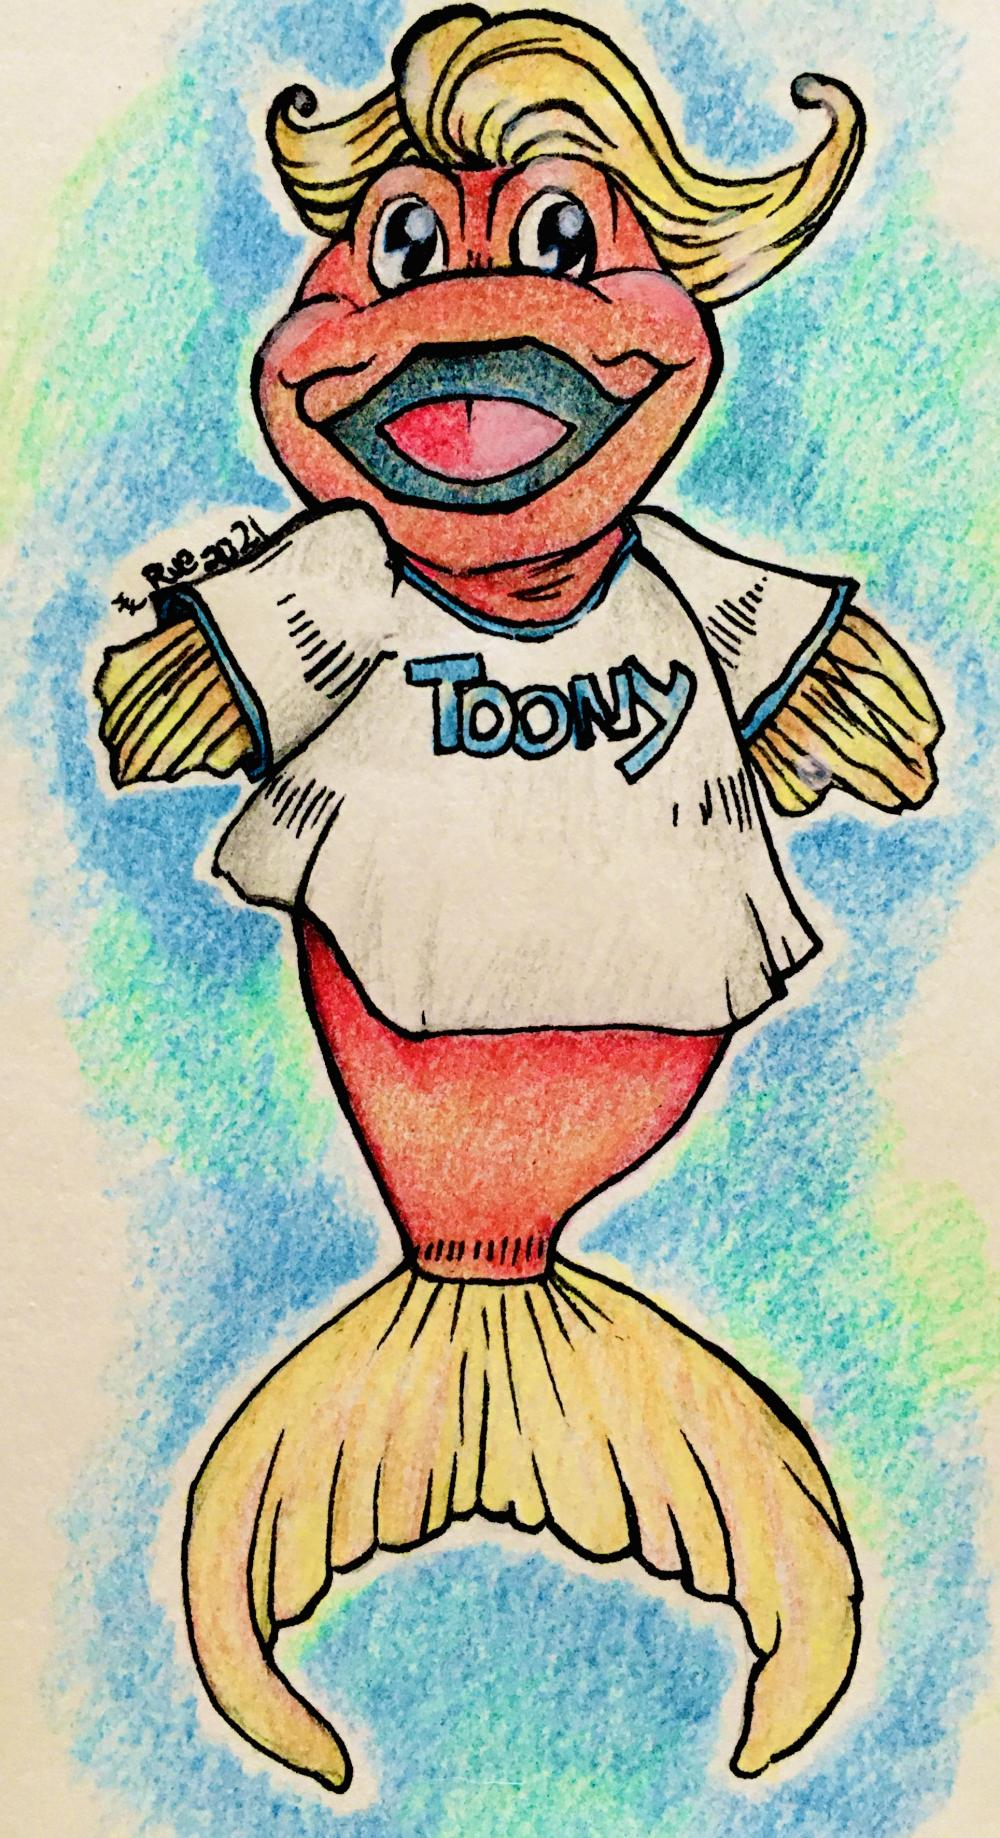 Love waking up with mom and dad and watching Toony every morning! Best way to start the day